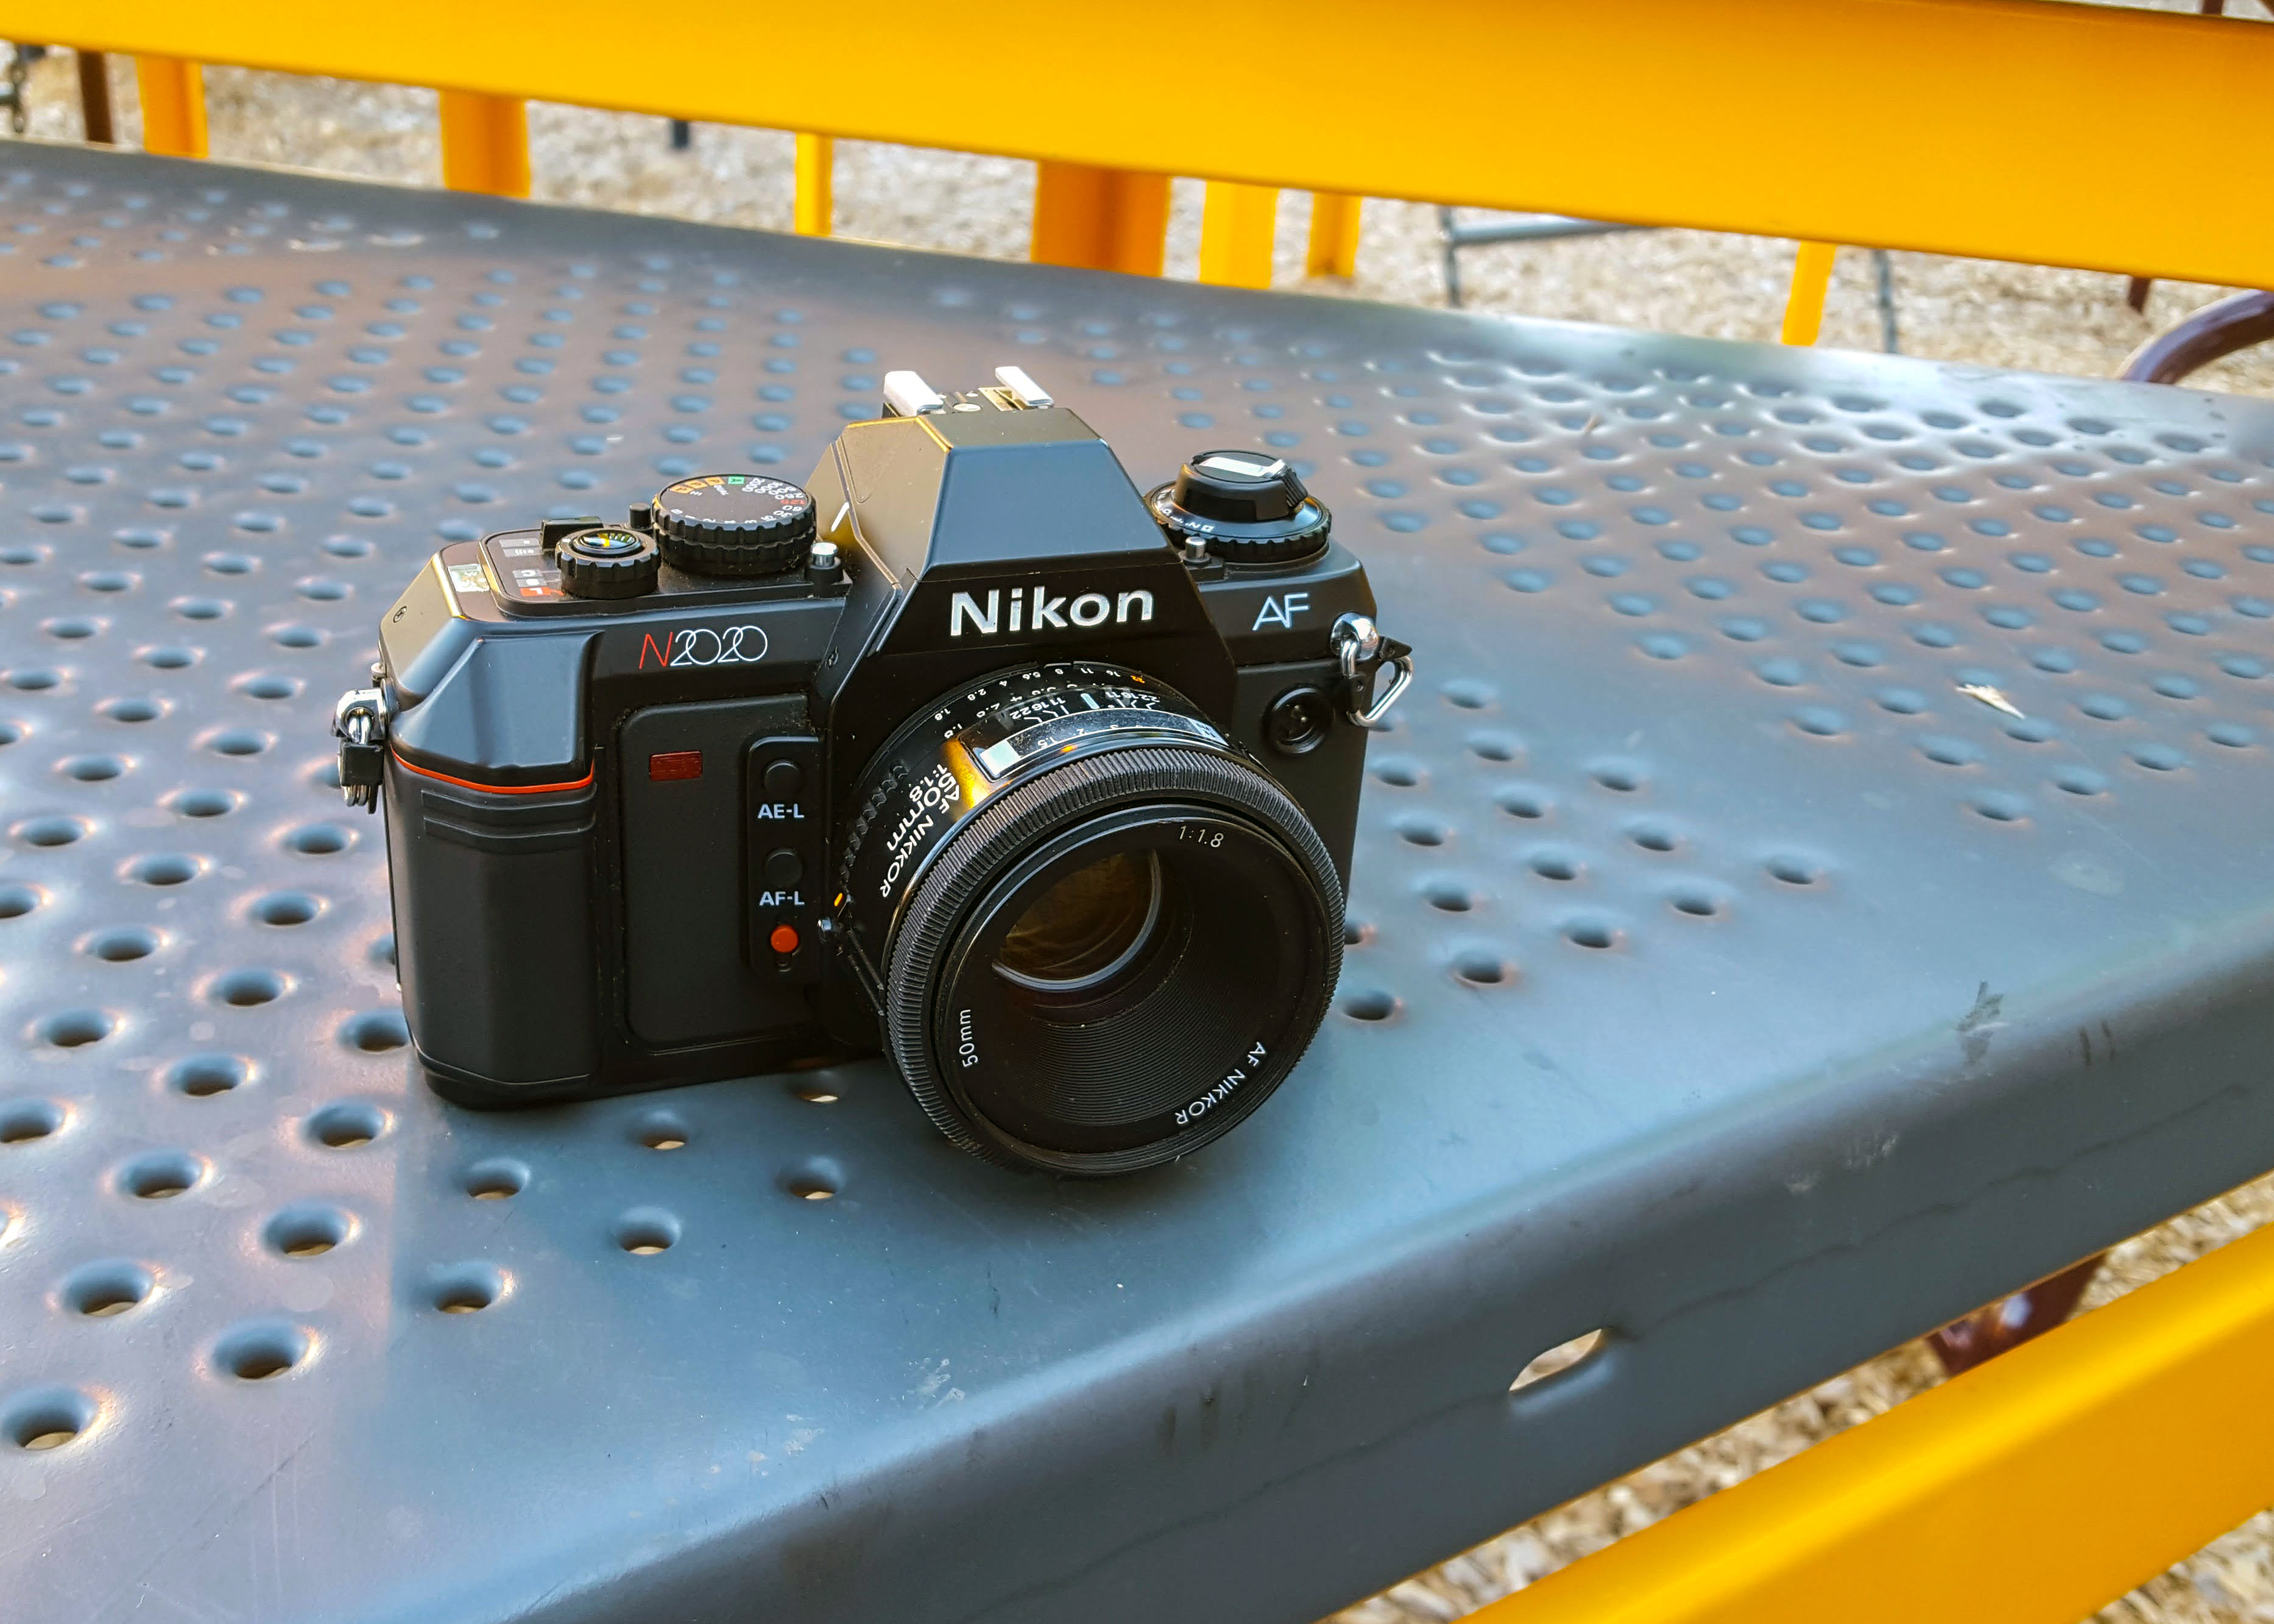 three decades of nikons elw n2020 and n90s mike eckman dot com rh mikeeckman com Nikon N4004 Nikon N2020 AF Camera